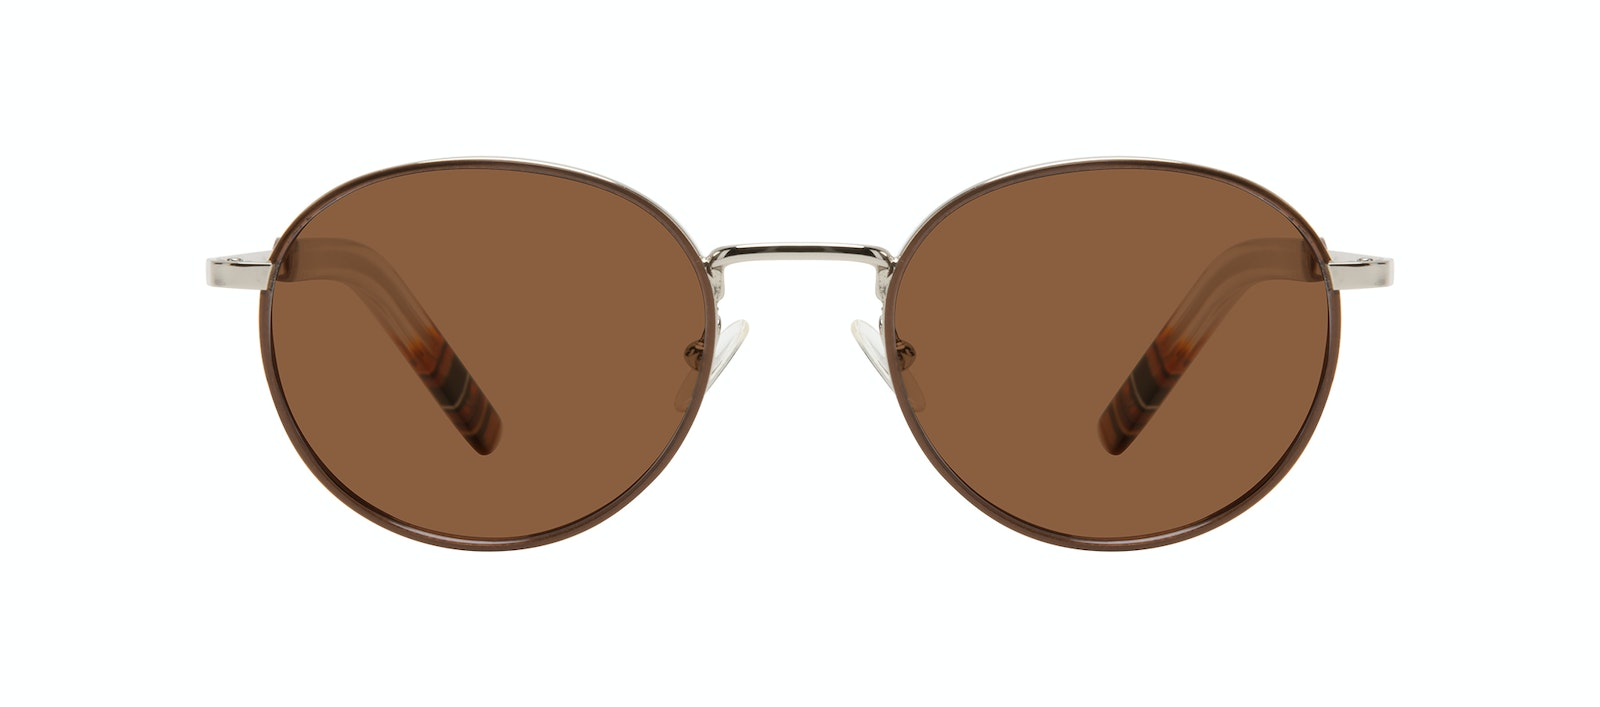 Affordable Fashion Glasses Round Sunglasses Men Reach Brown Steel Front